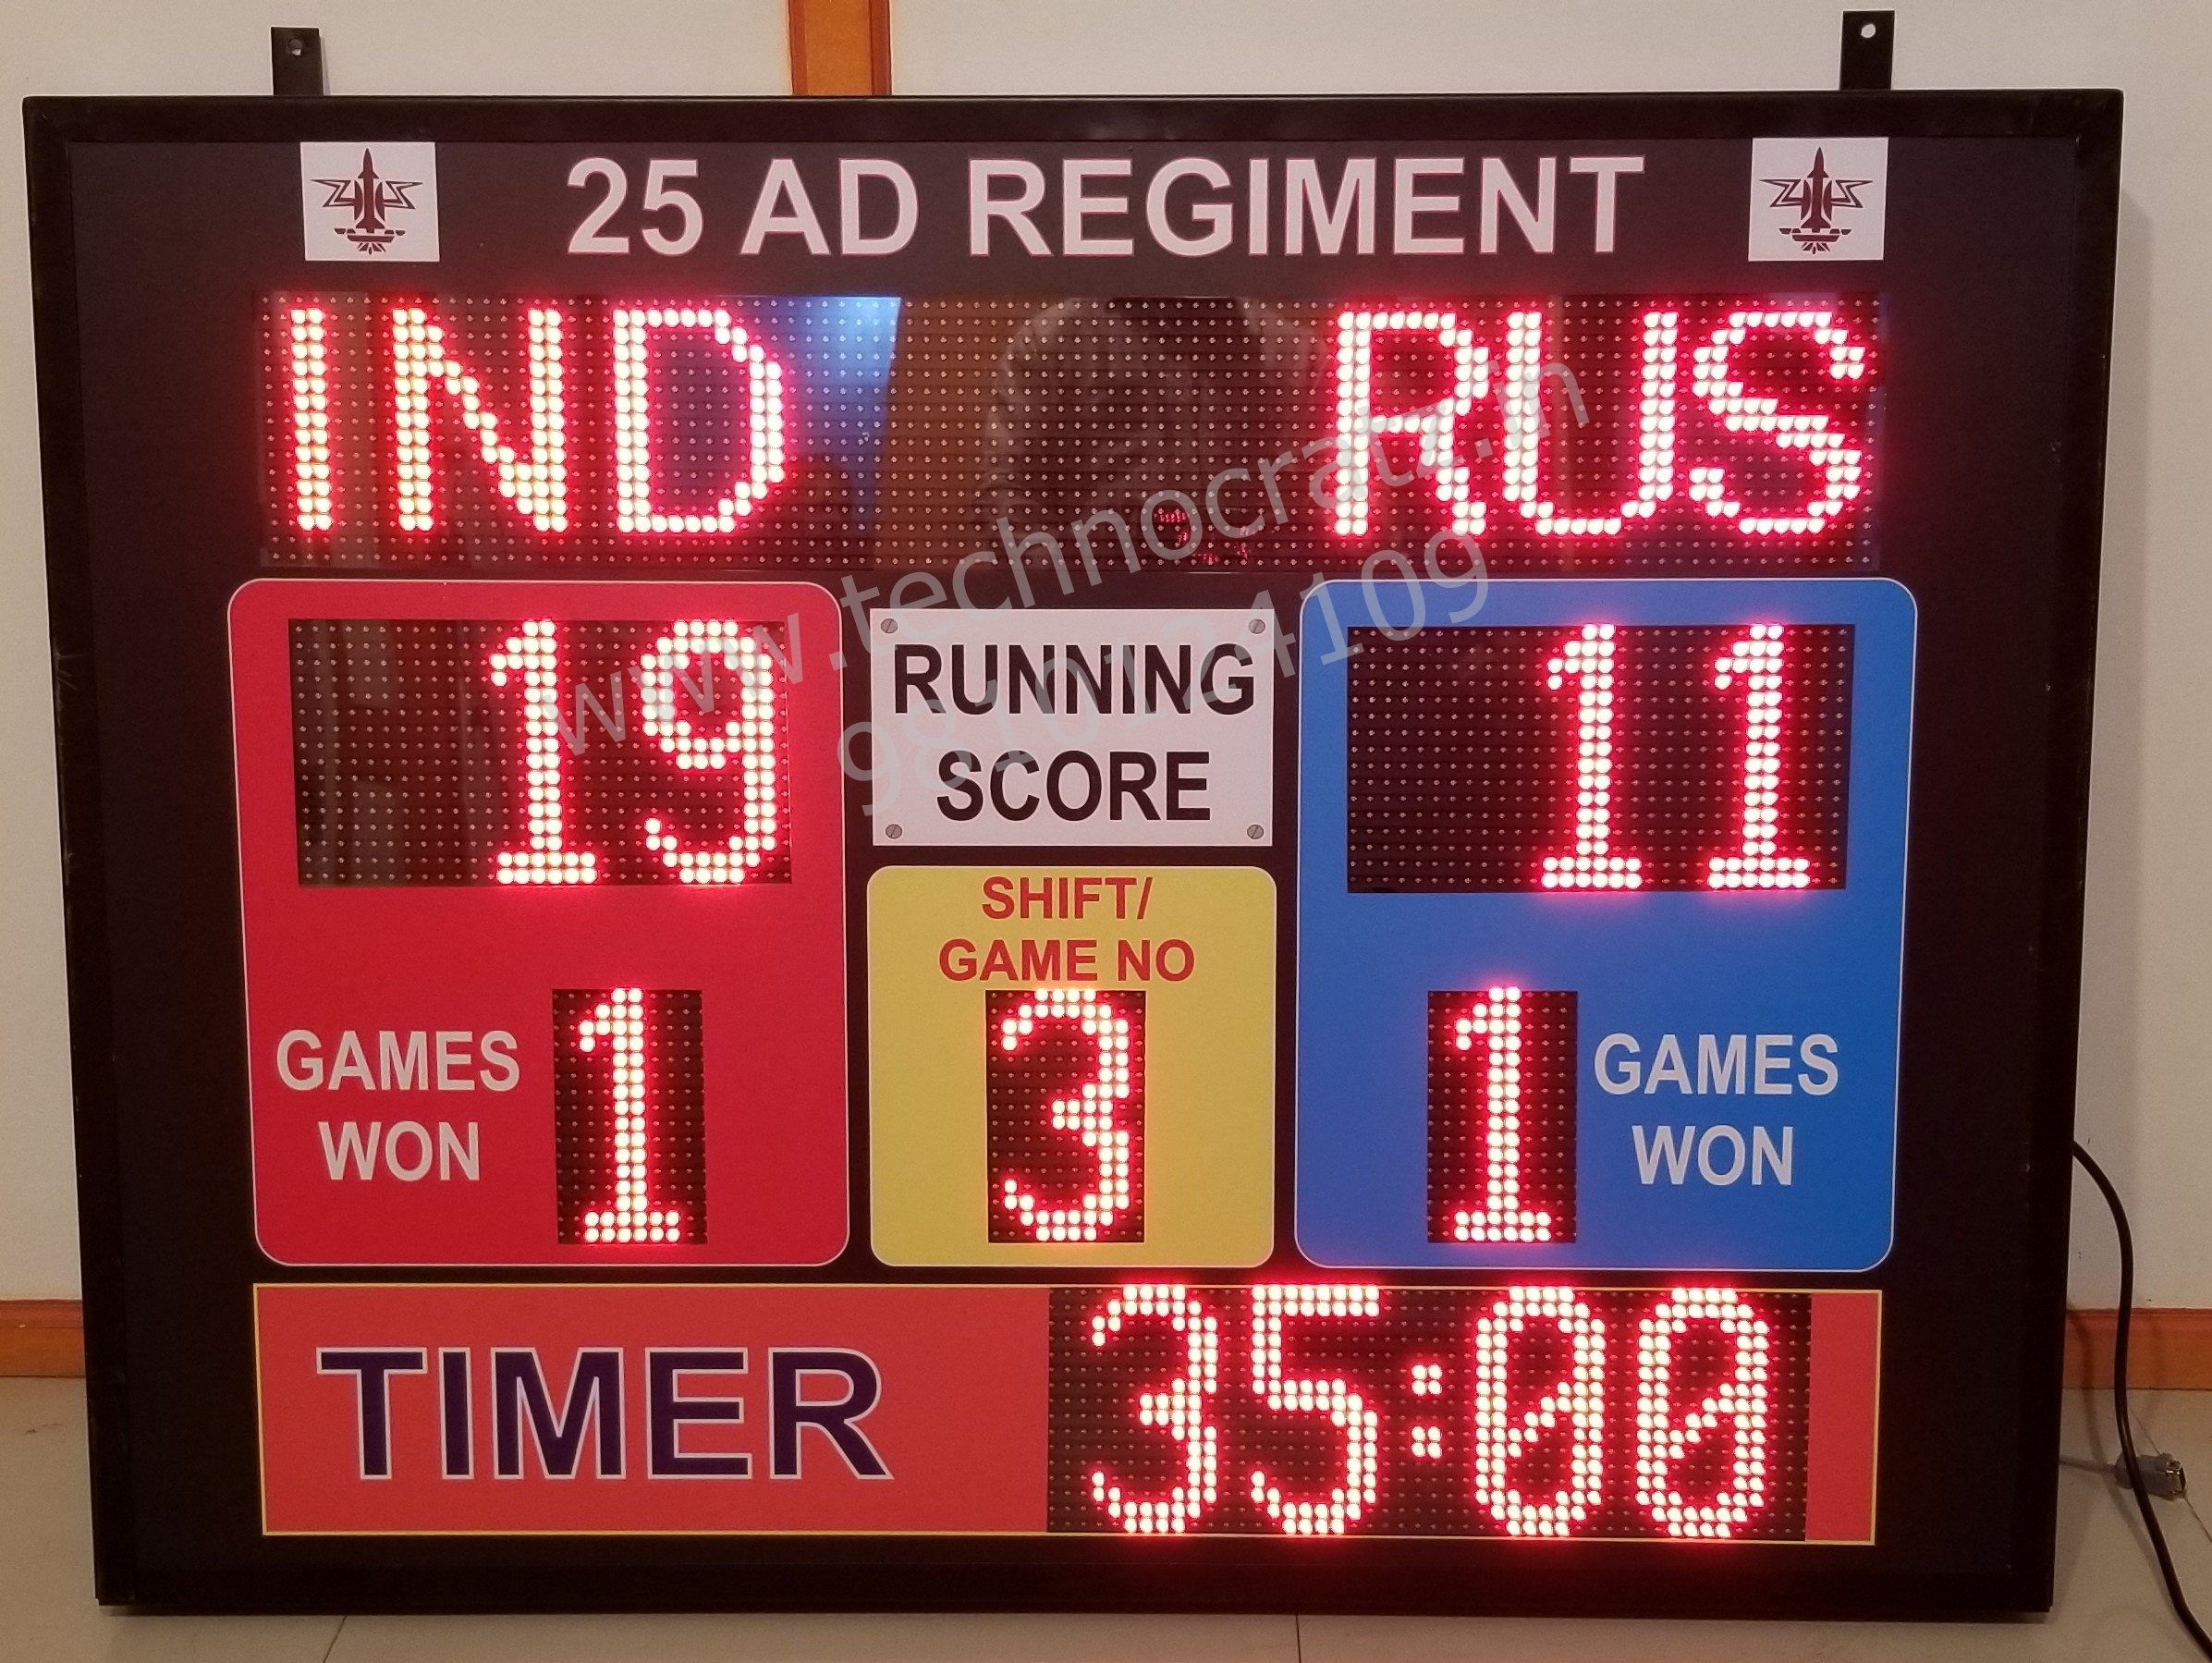 Football Scoreboard, Scoreboard, Led Football  Scoreboard, Led Scoreboard, Led Boards, Led Football  Scoreboard Manufacturer, Football  Scoreboard Manufacturer